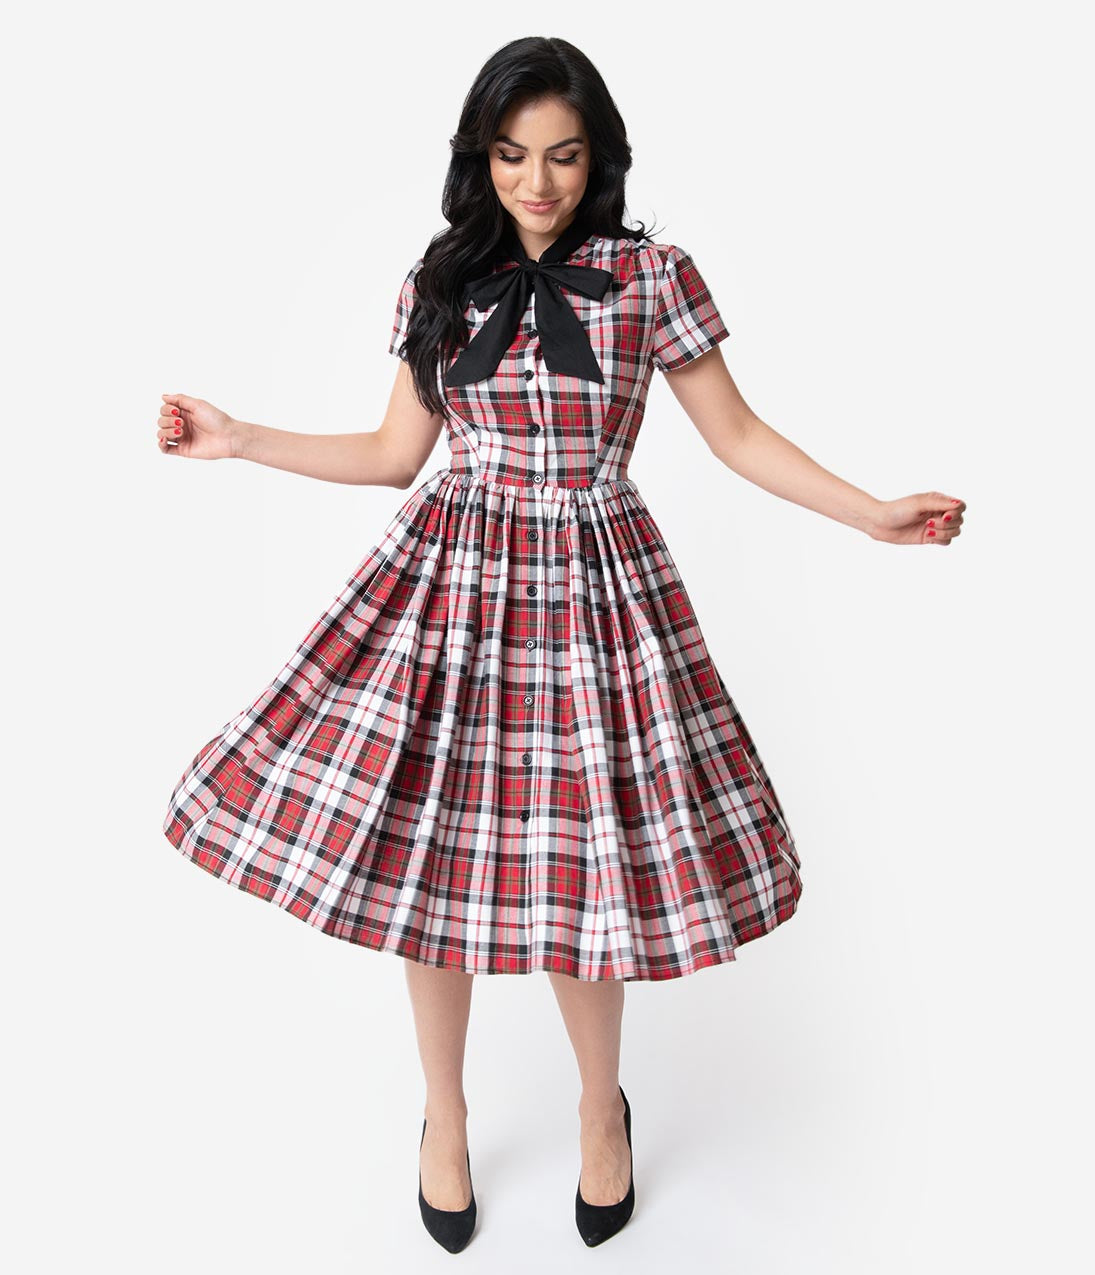 Fifties Dresses : 1950s Style Swing to Wiggle Dresses Unique Vintage 1950S Style Red Plaid Button Up Swing Dress $118.00 AT vintagedancer.com